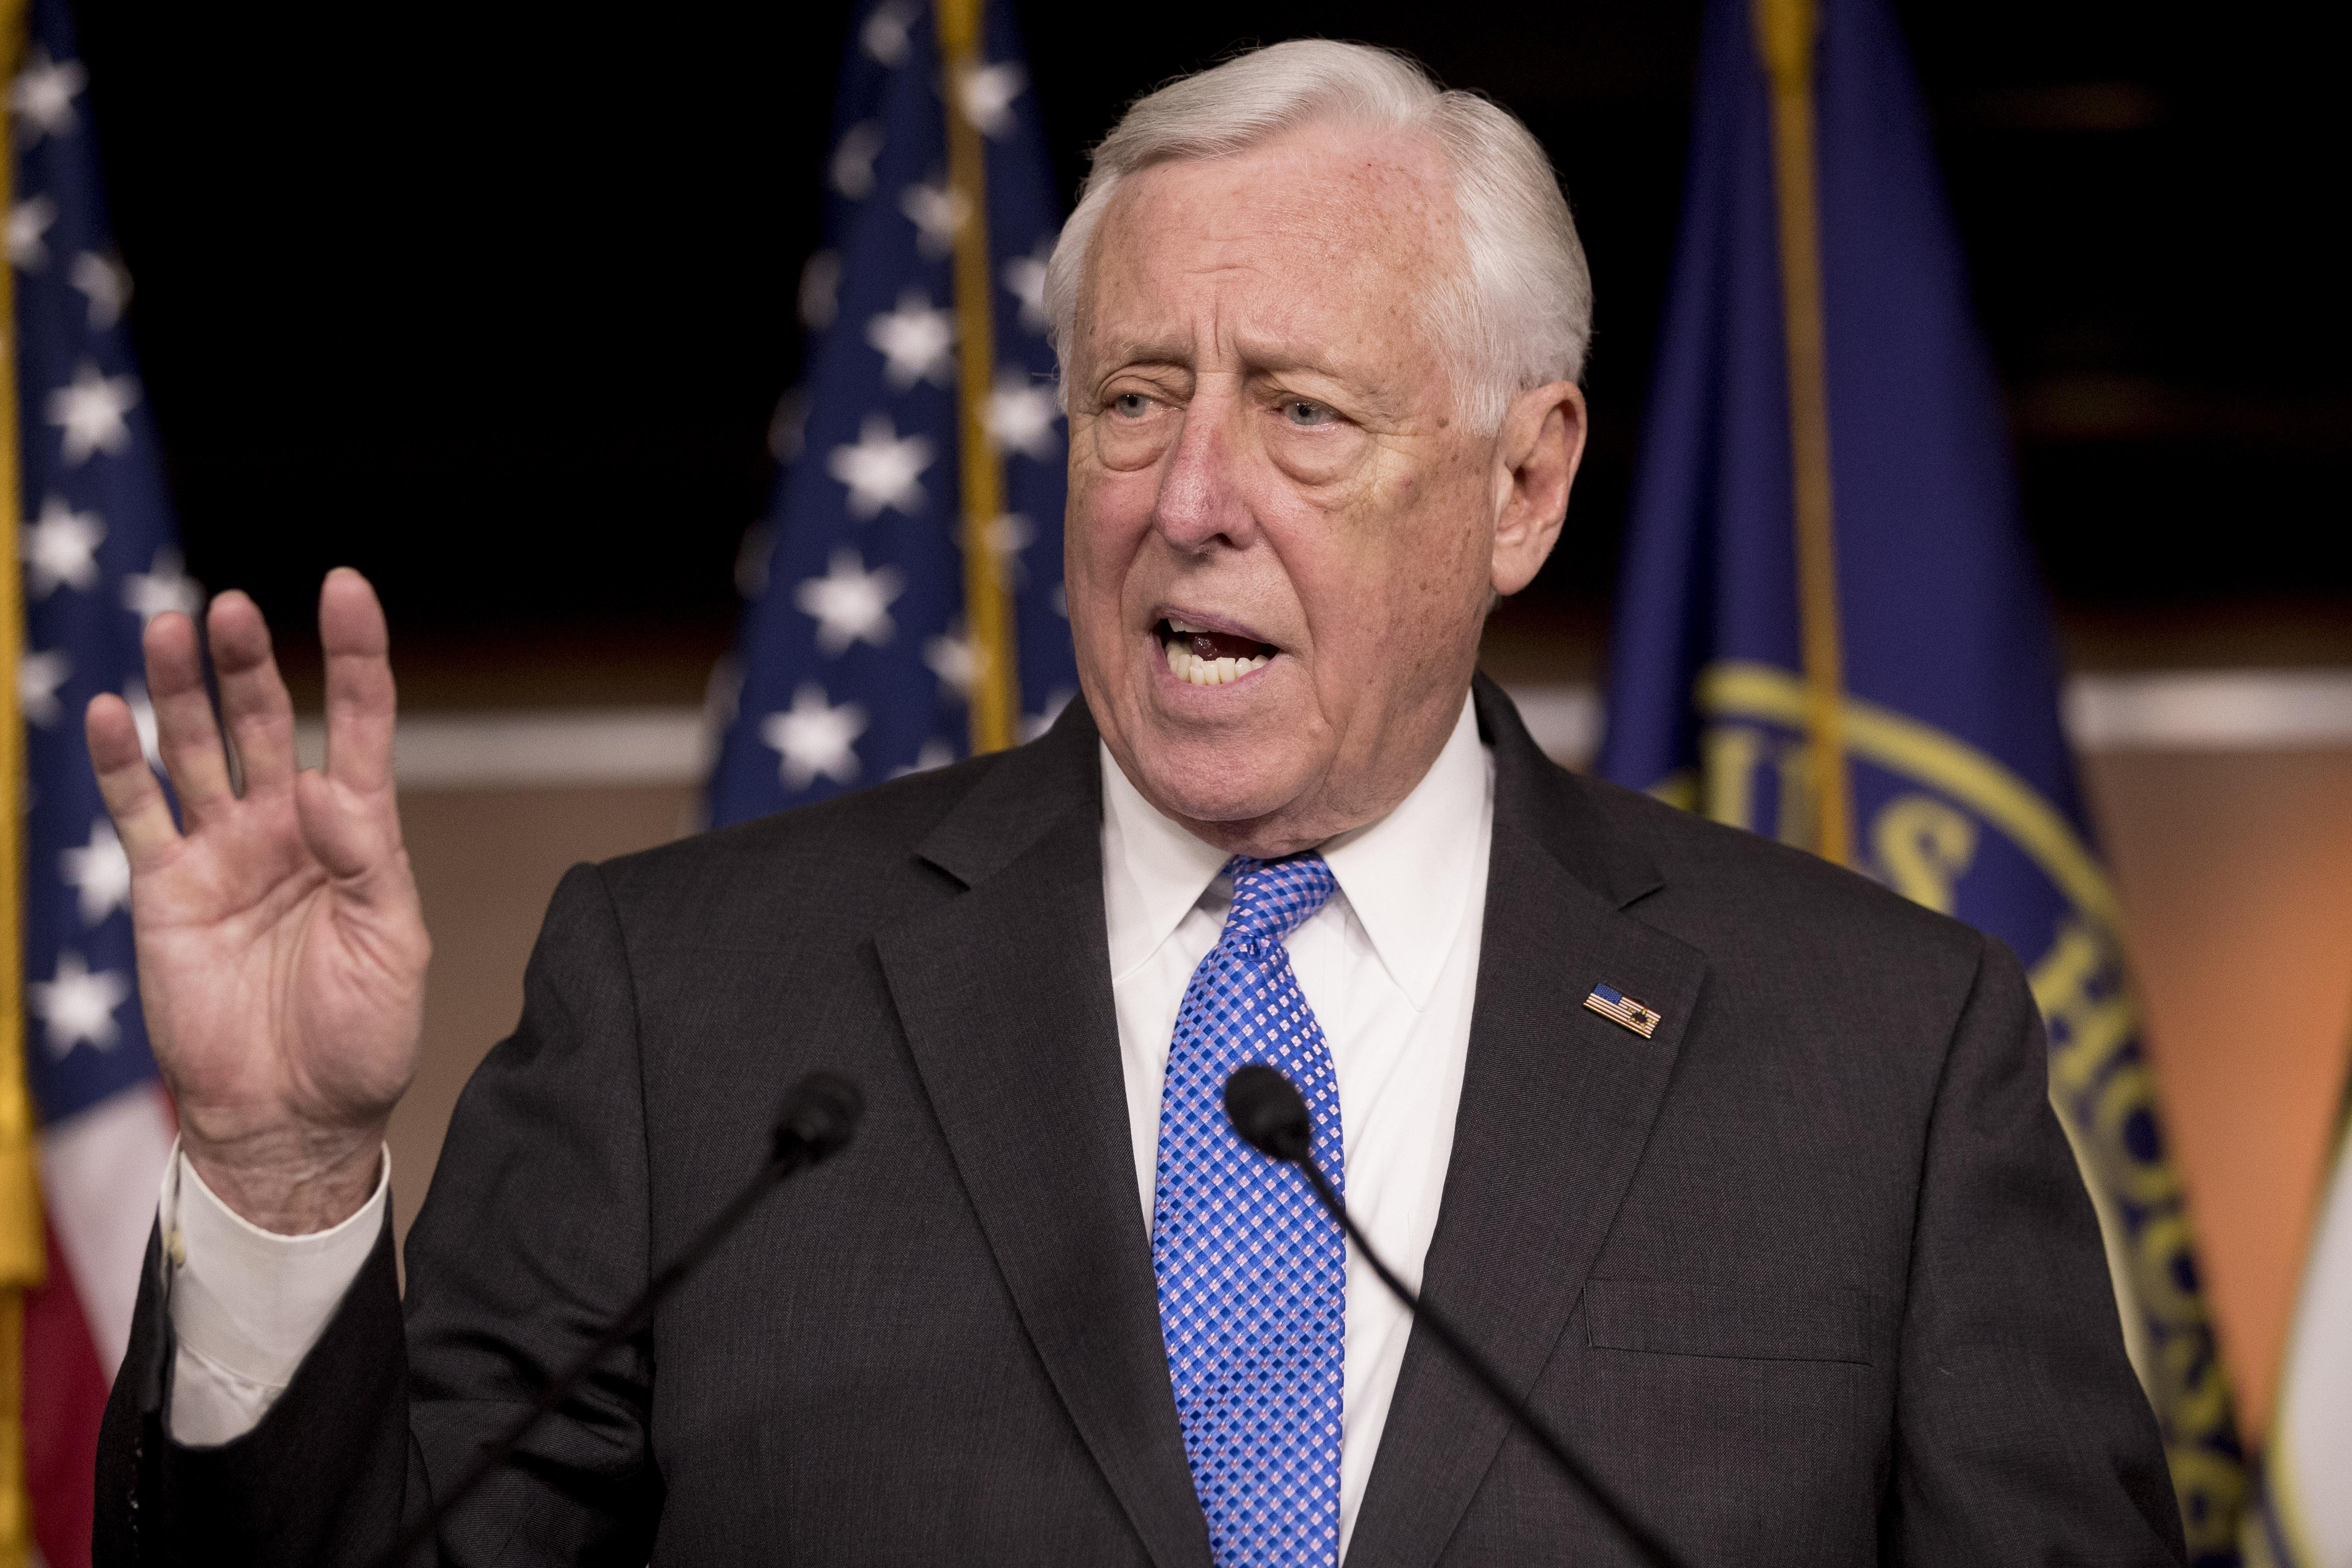 Hoyer backs down on pay raises: 'We don't have the votes'